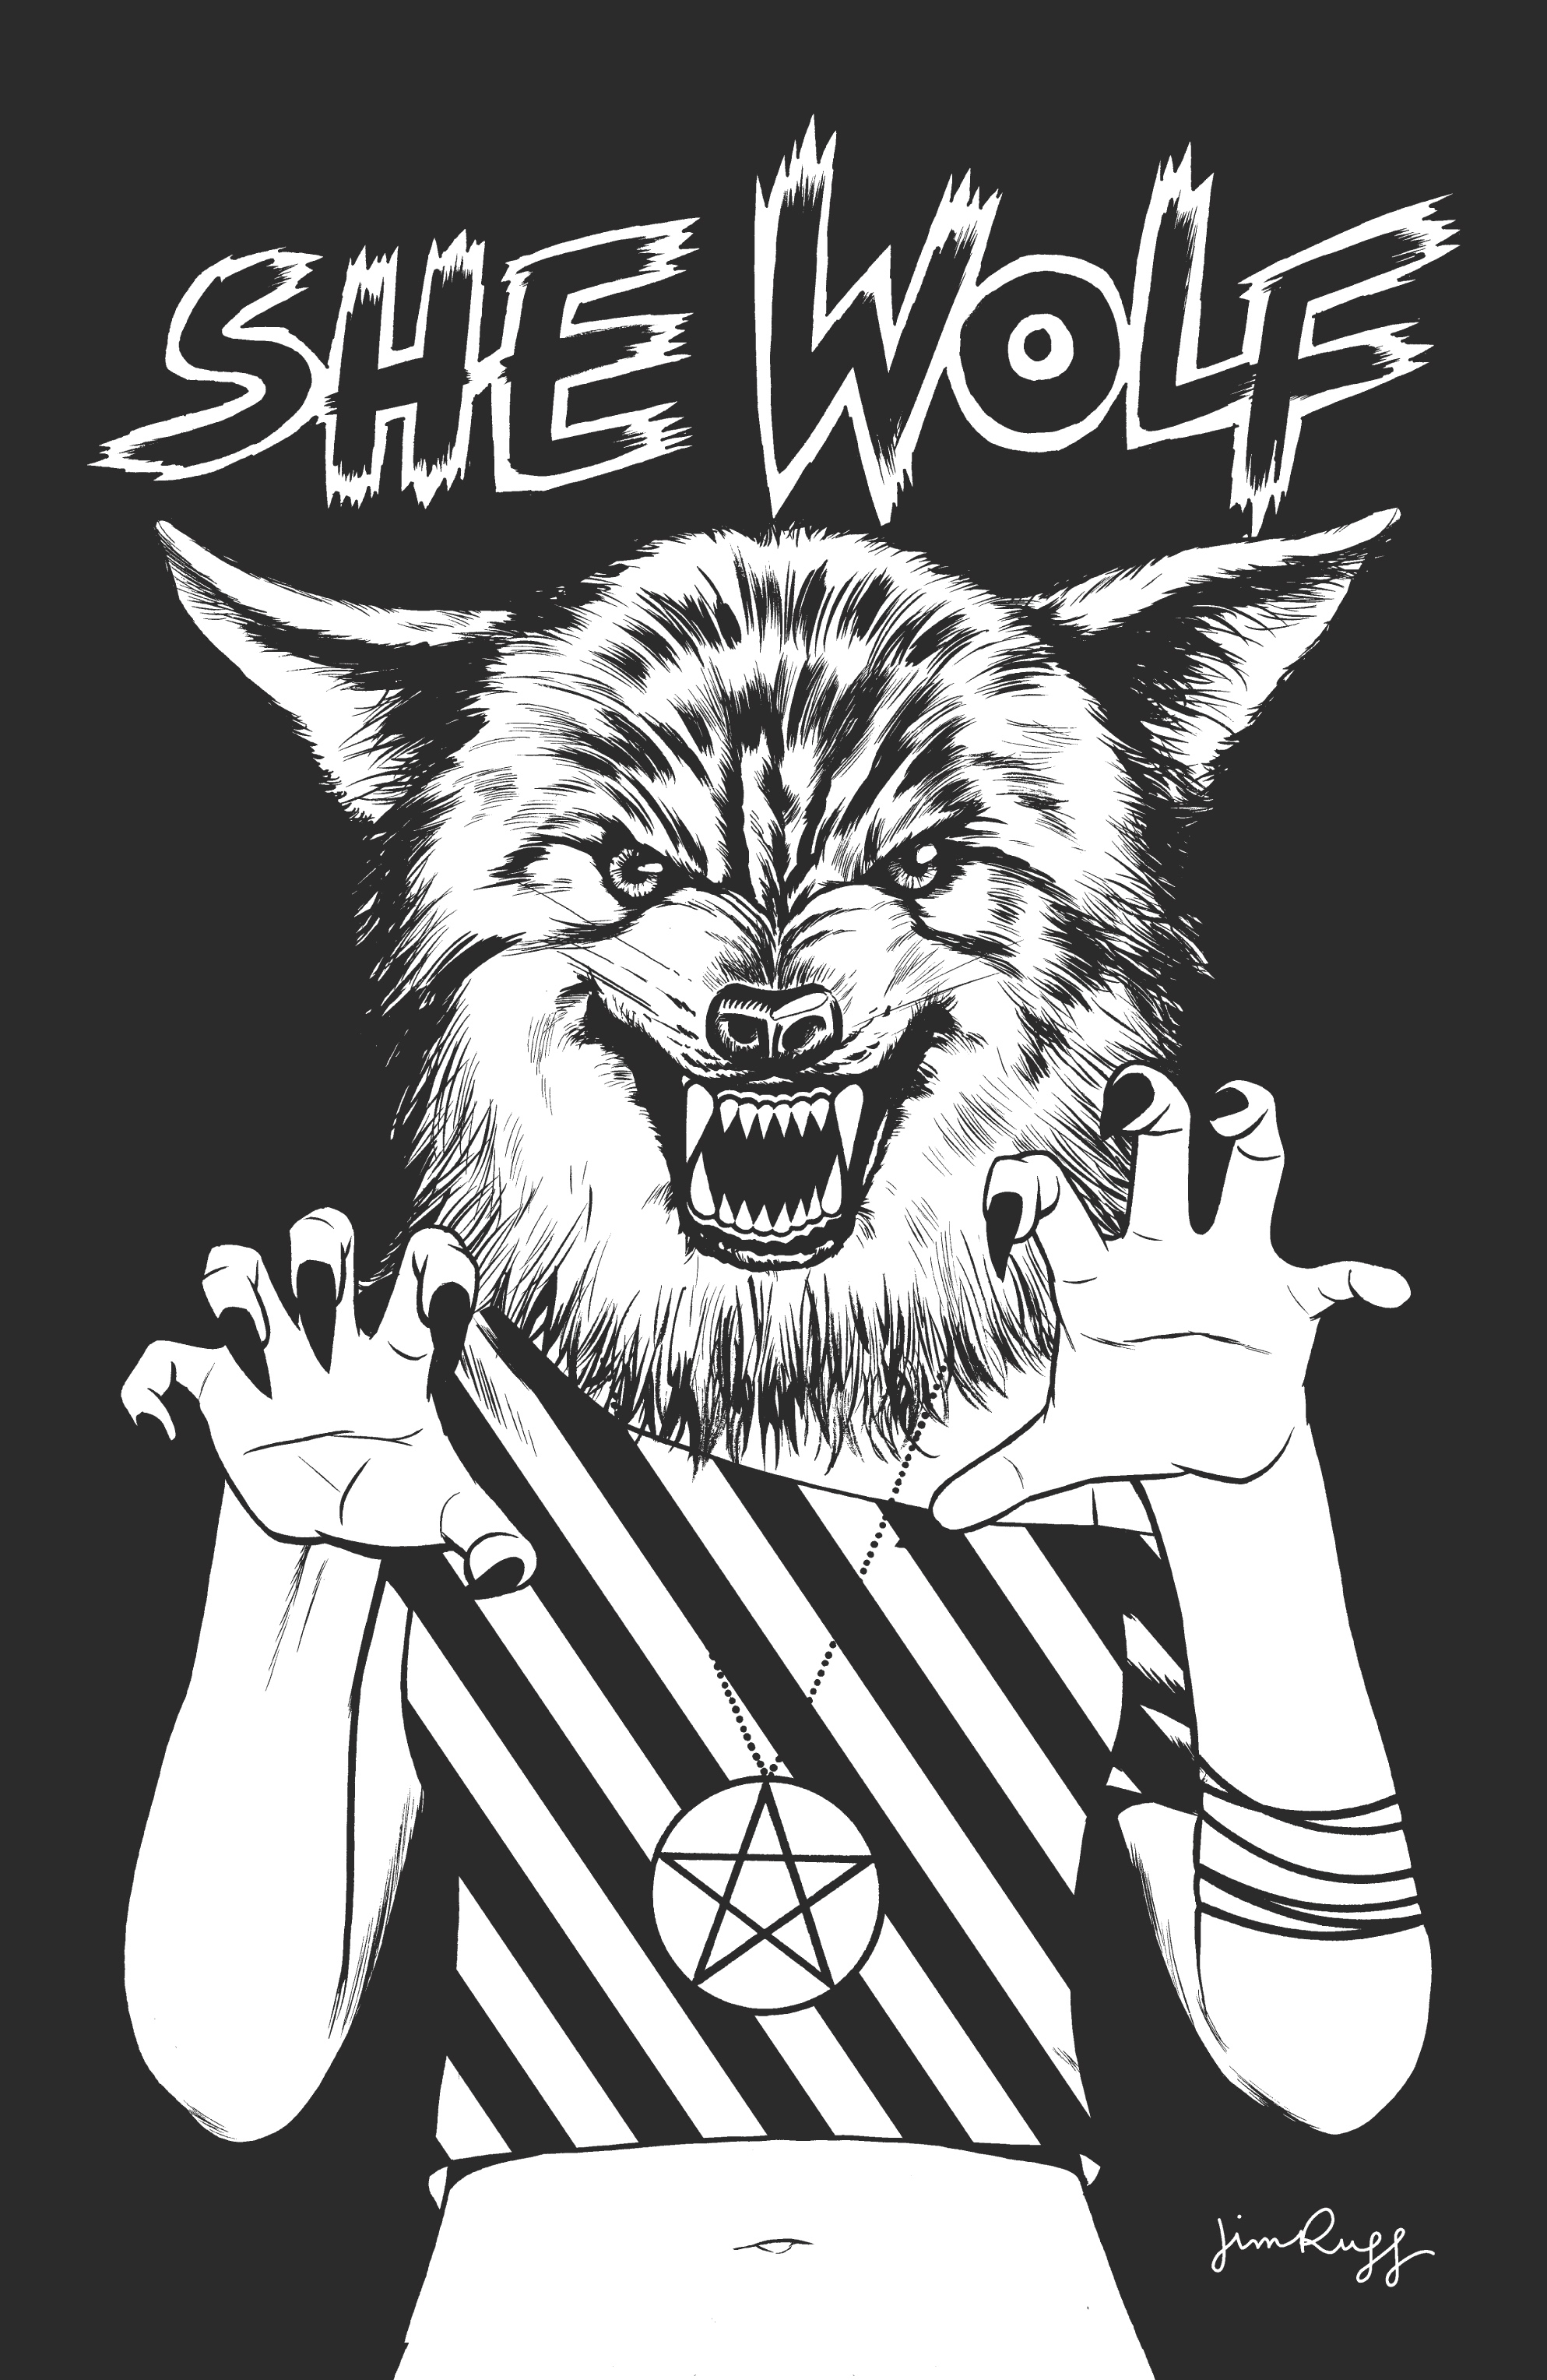 Read online She Wolf comic -  Issue #3 - 29